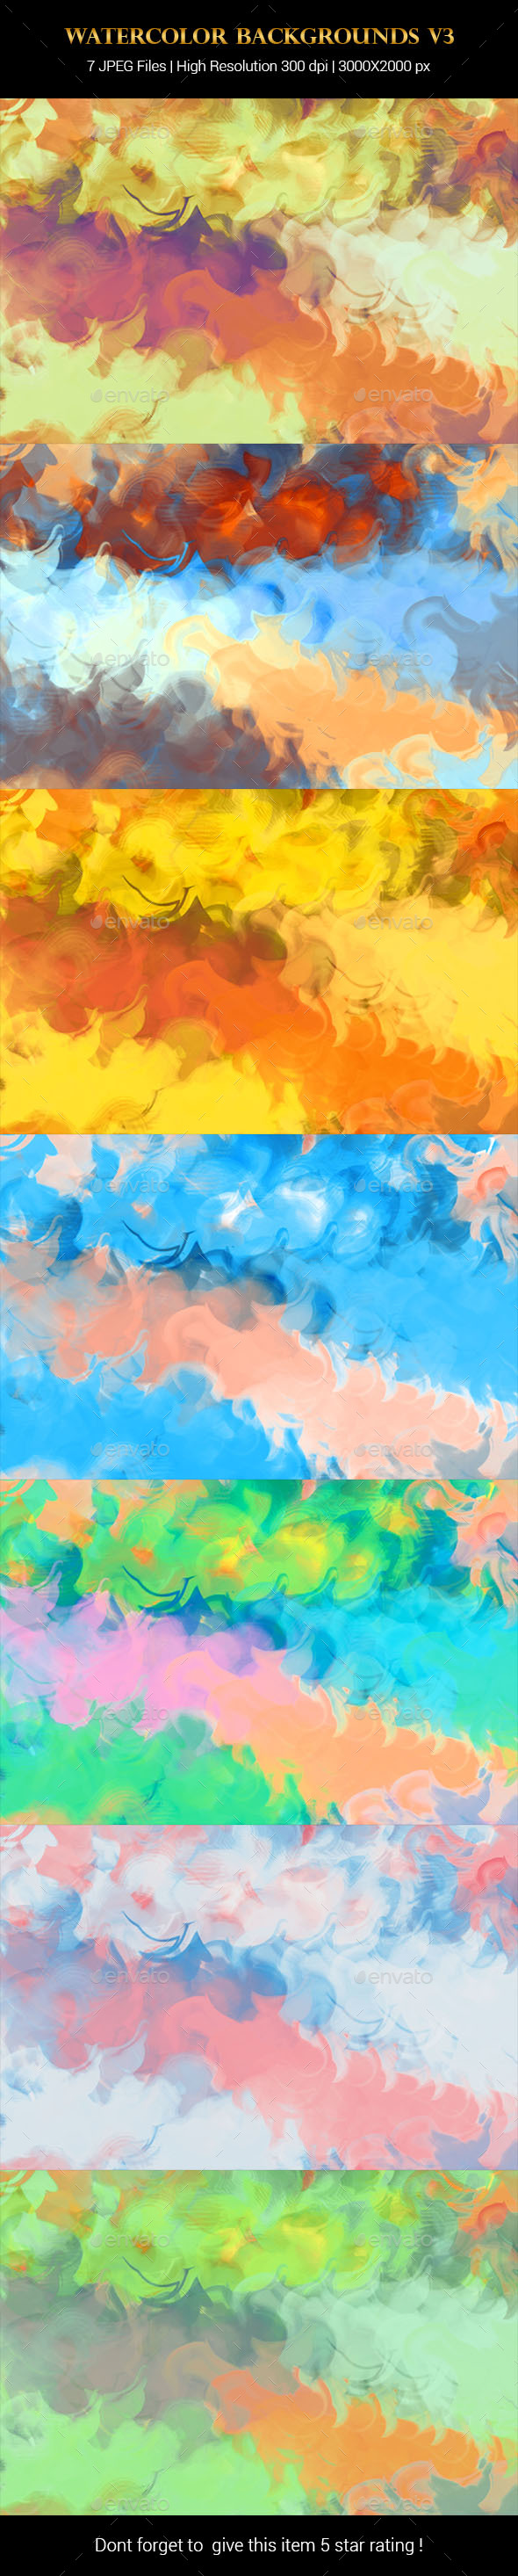 Watercolor Backgrounds v3 - Backgrounds Graphics